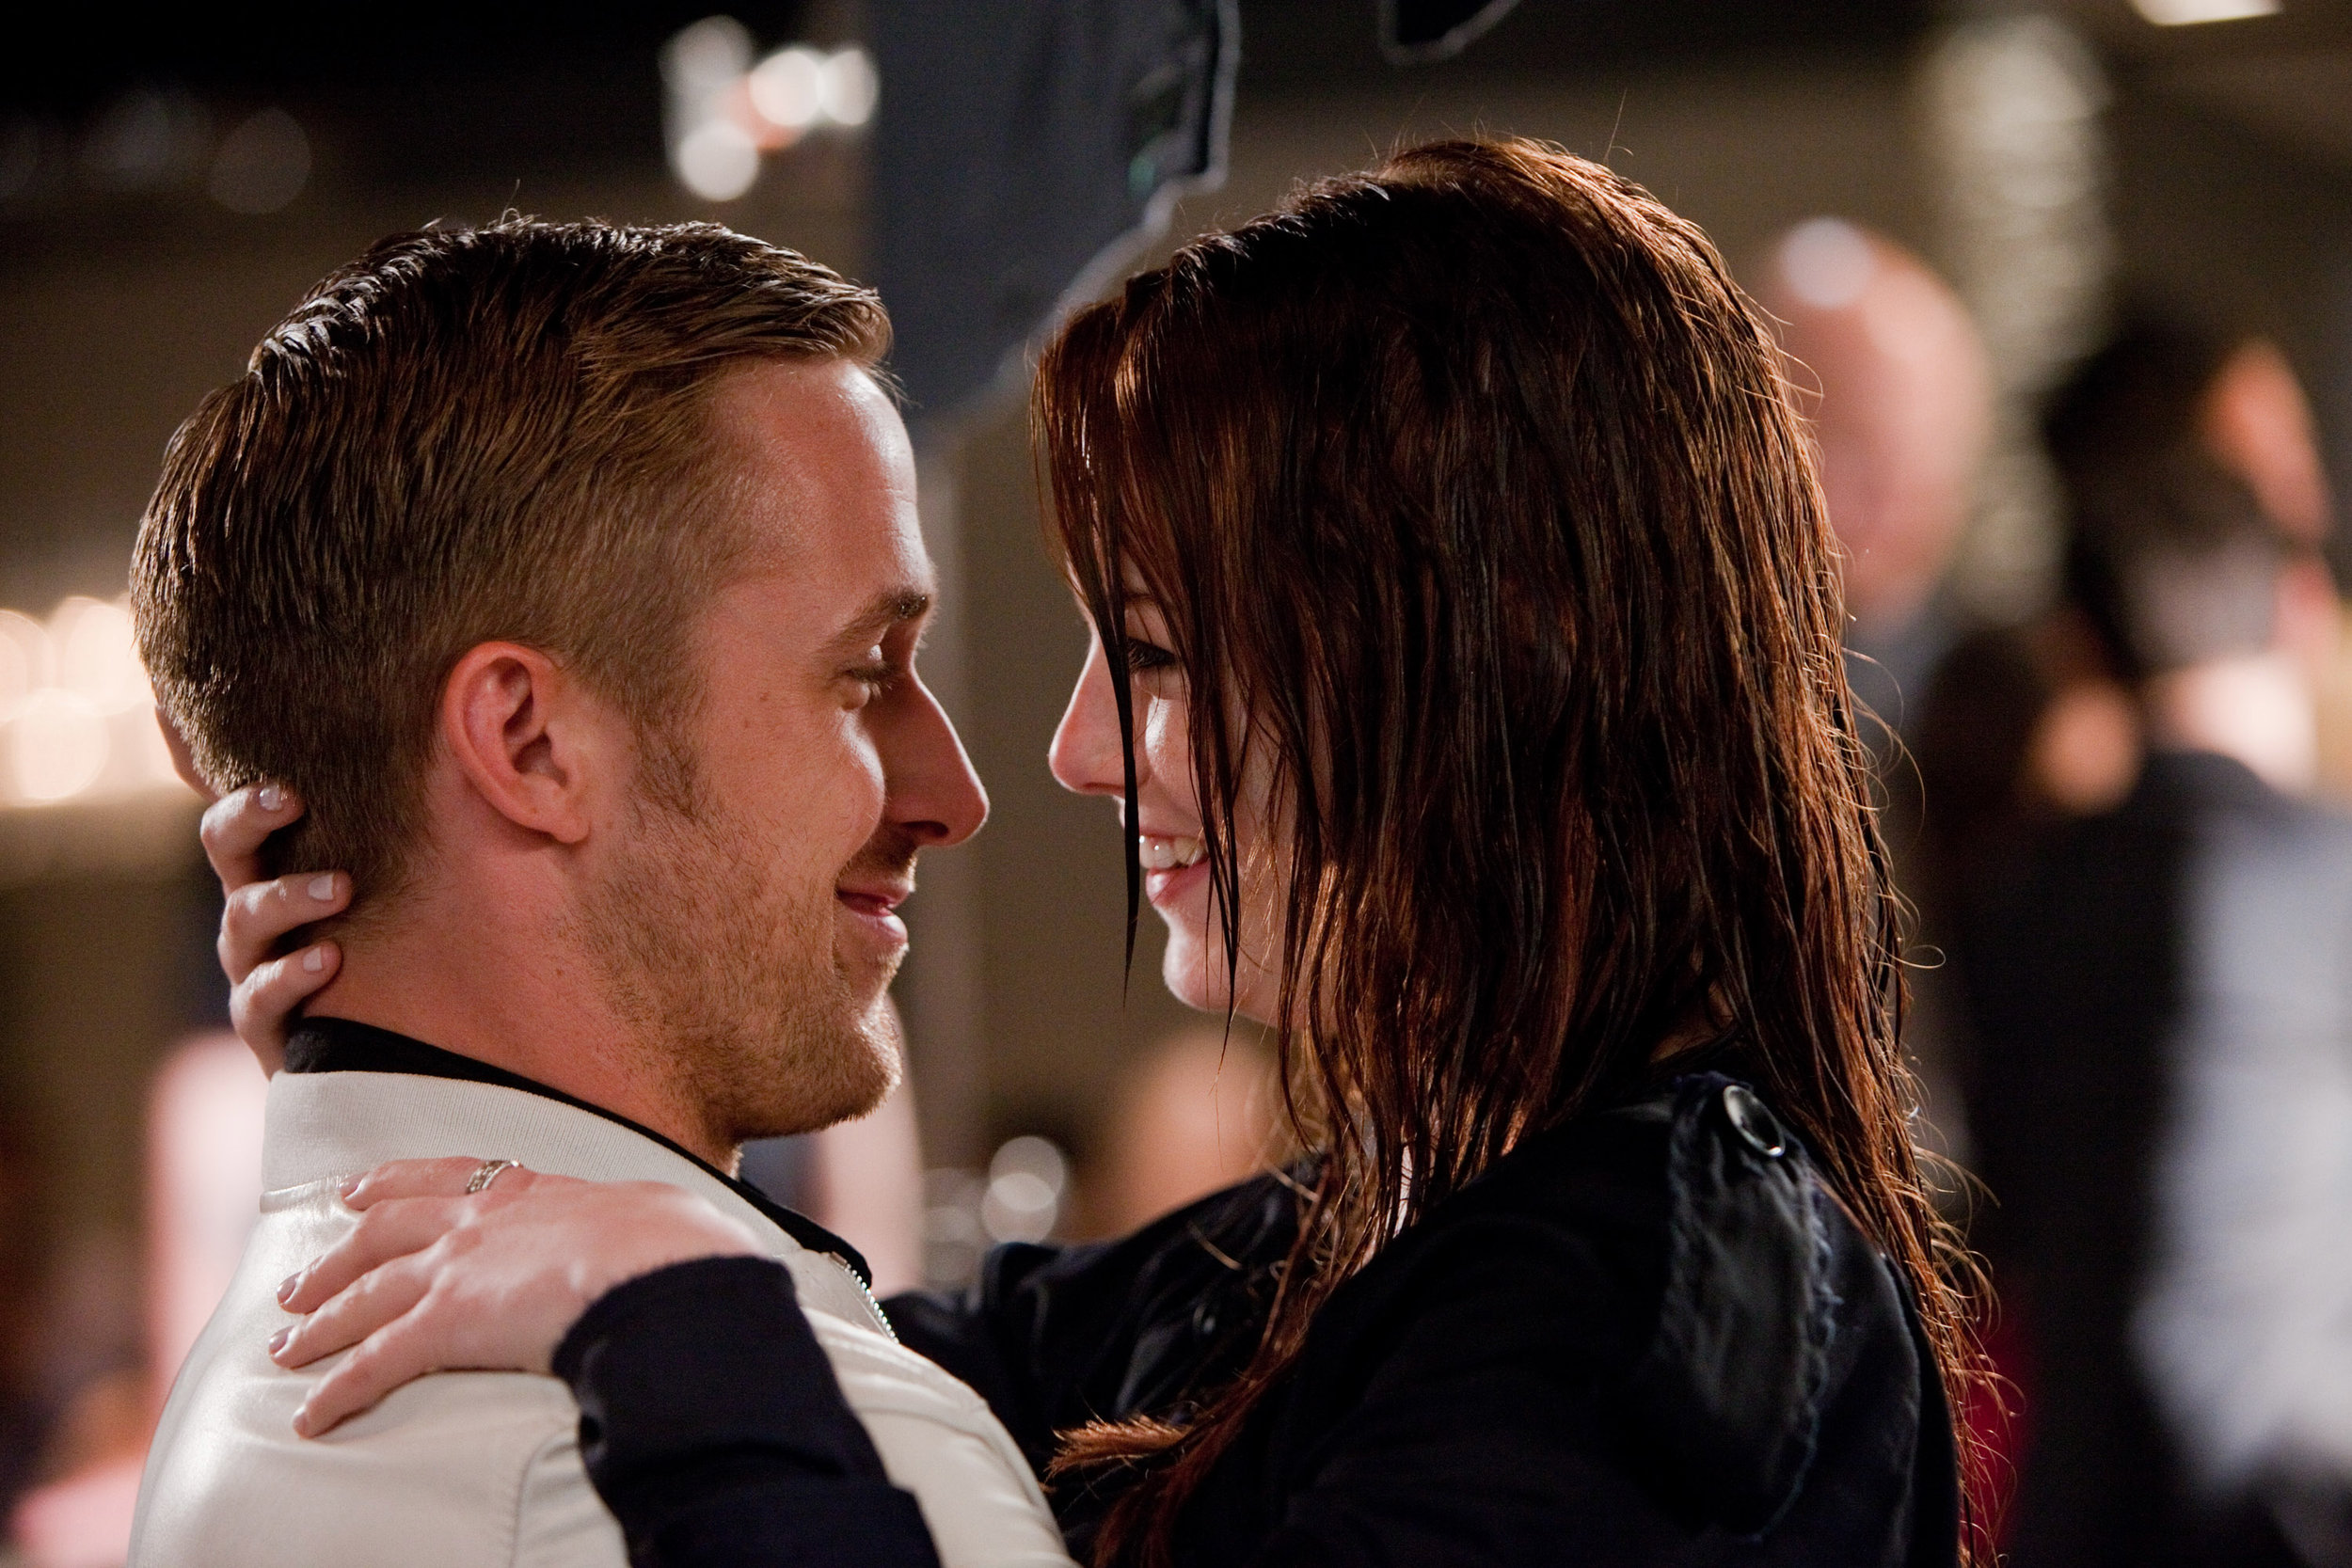 Ryan Gosling and Emma Stone in Crazy, Stupid, Love (2011)